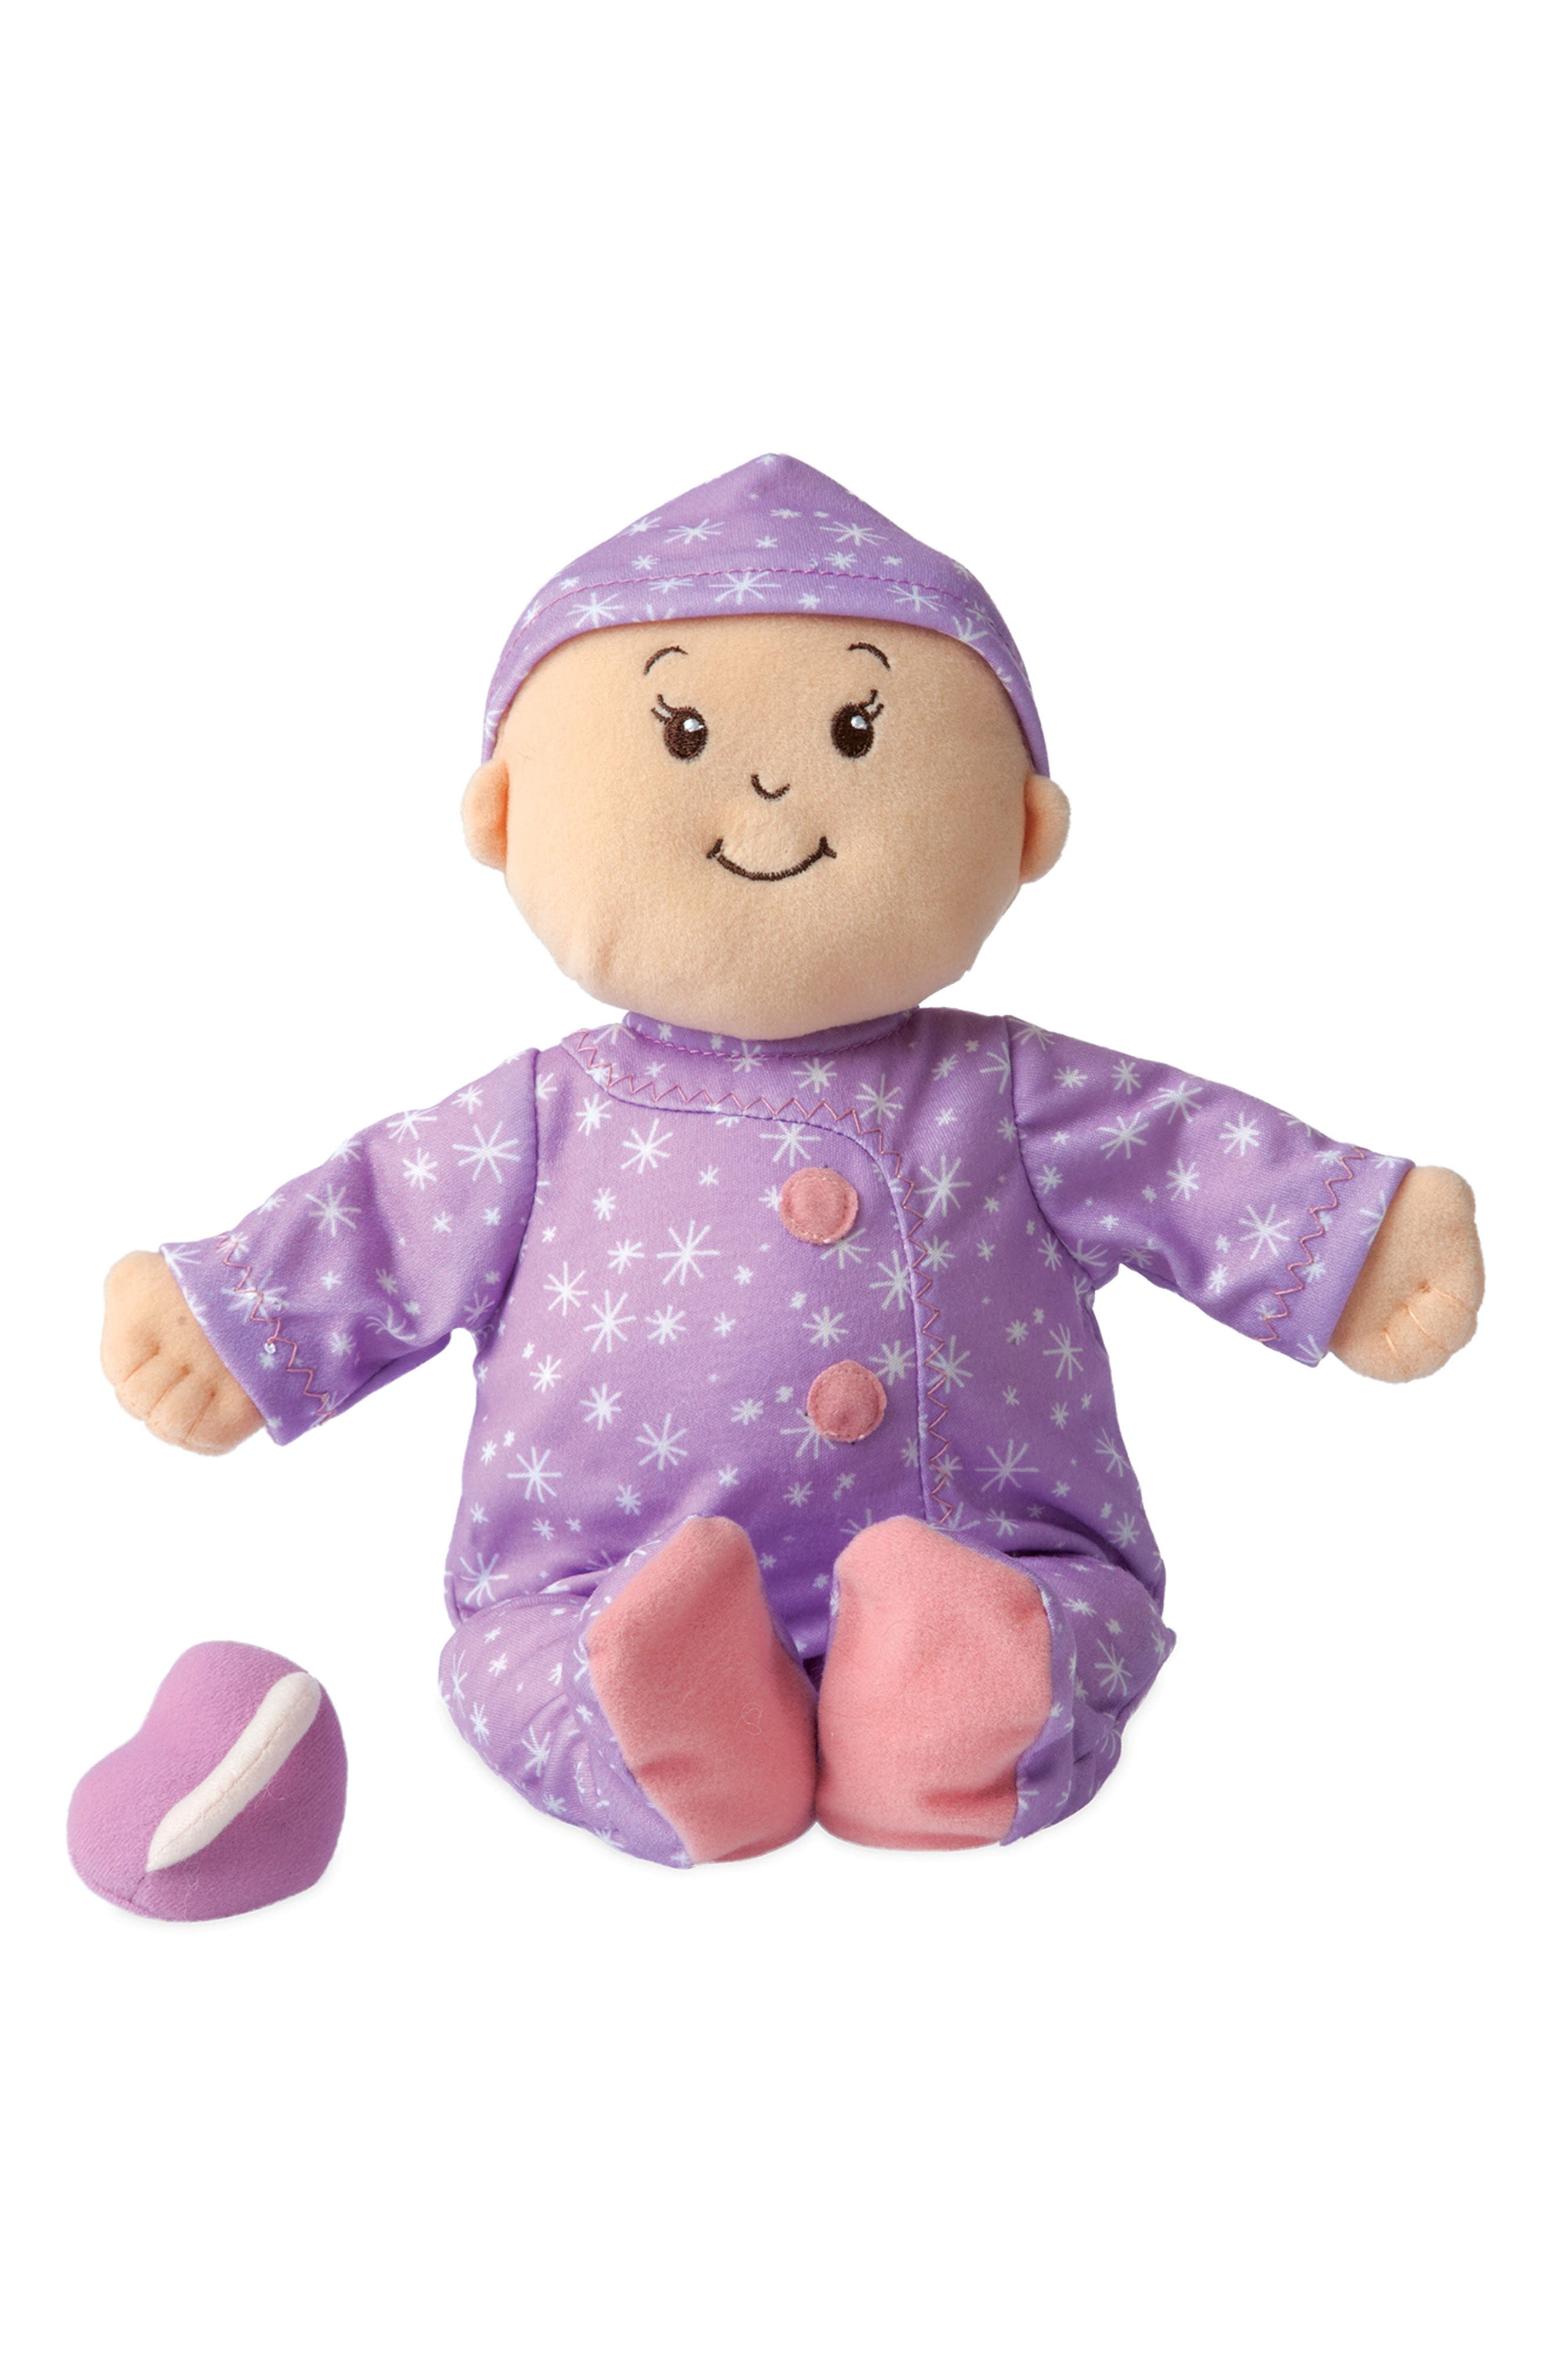 Baby Stella - Sweet Dreams Doll Toy,                         Main,                         color, 500